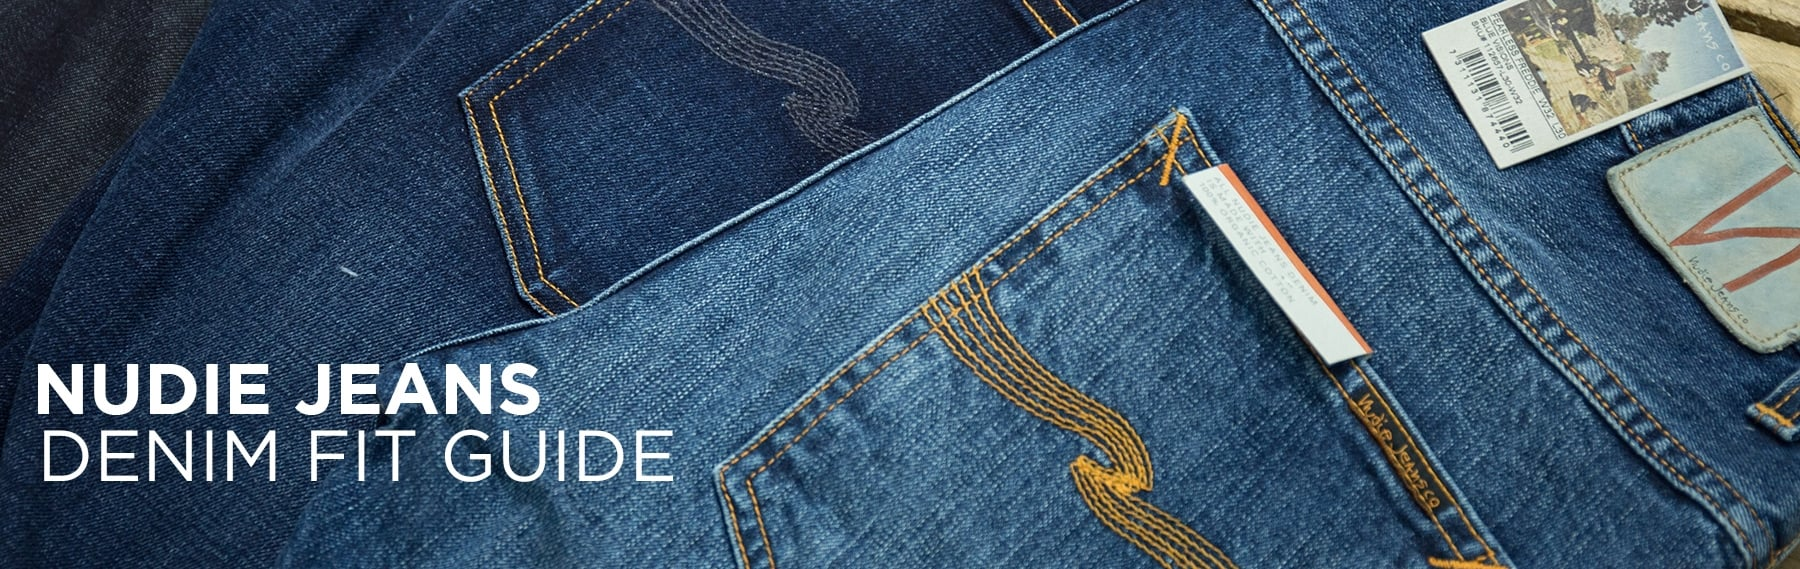 Nudie Jeans Fit Guide Nudie Size Guide Stuarts London